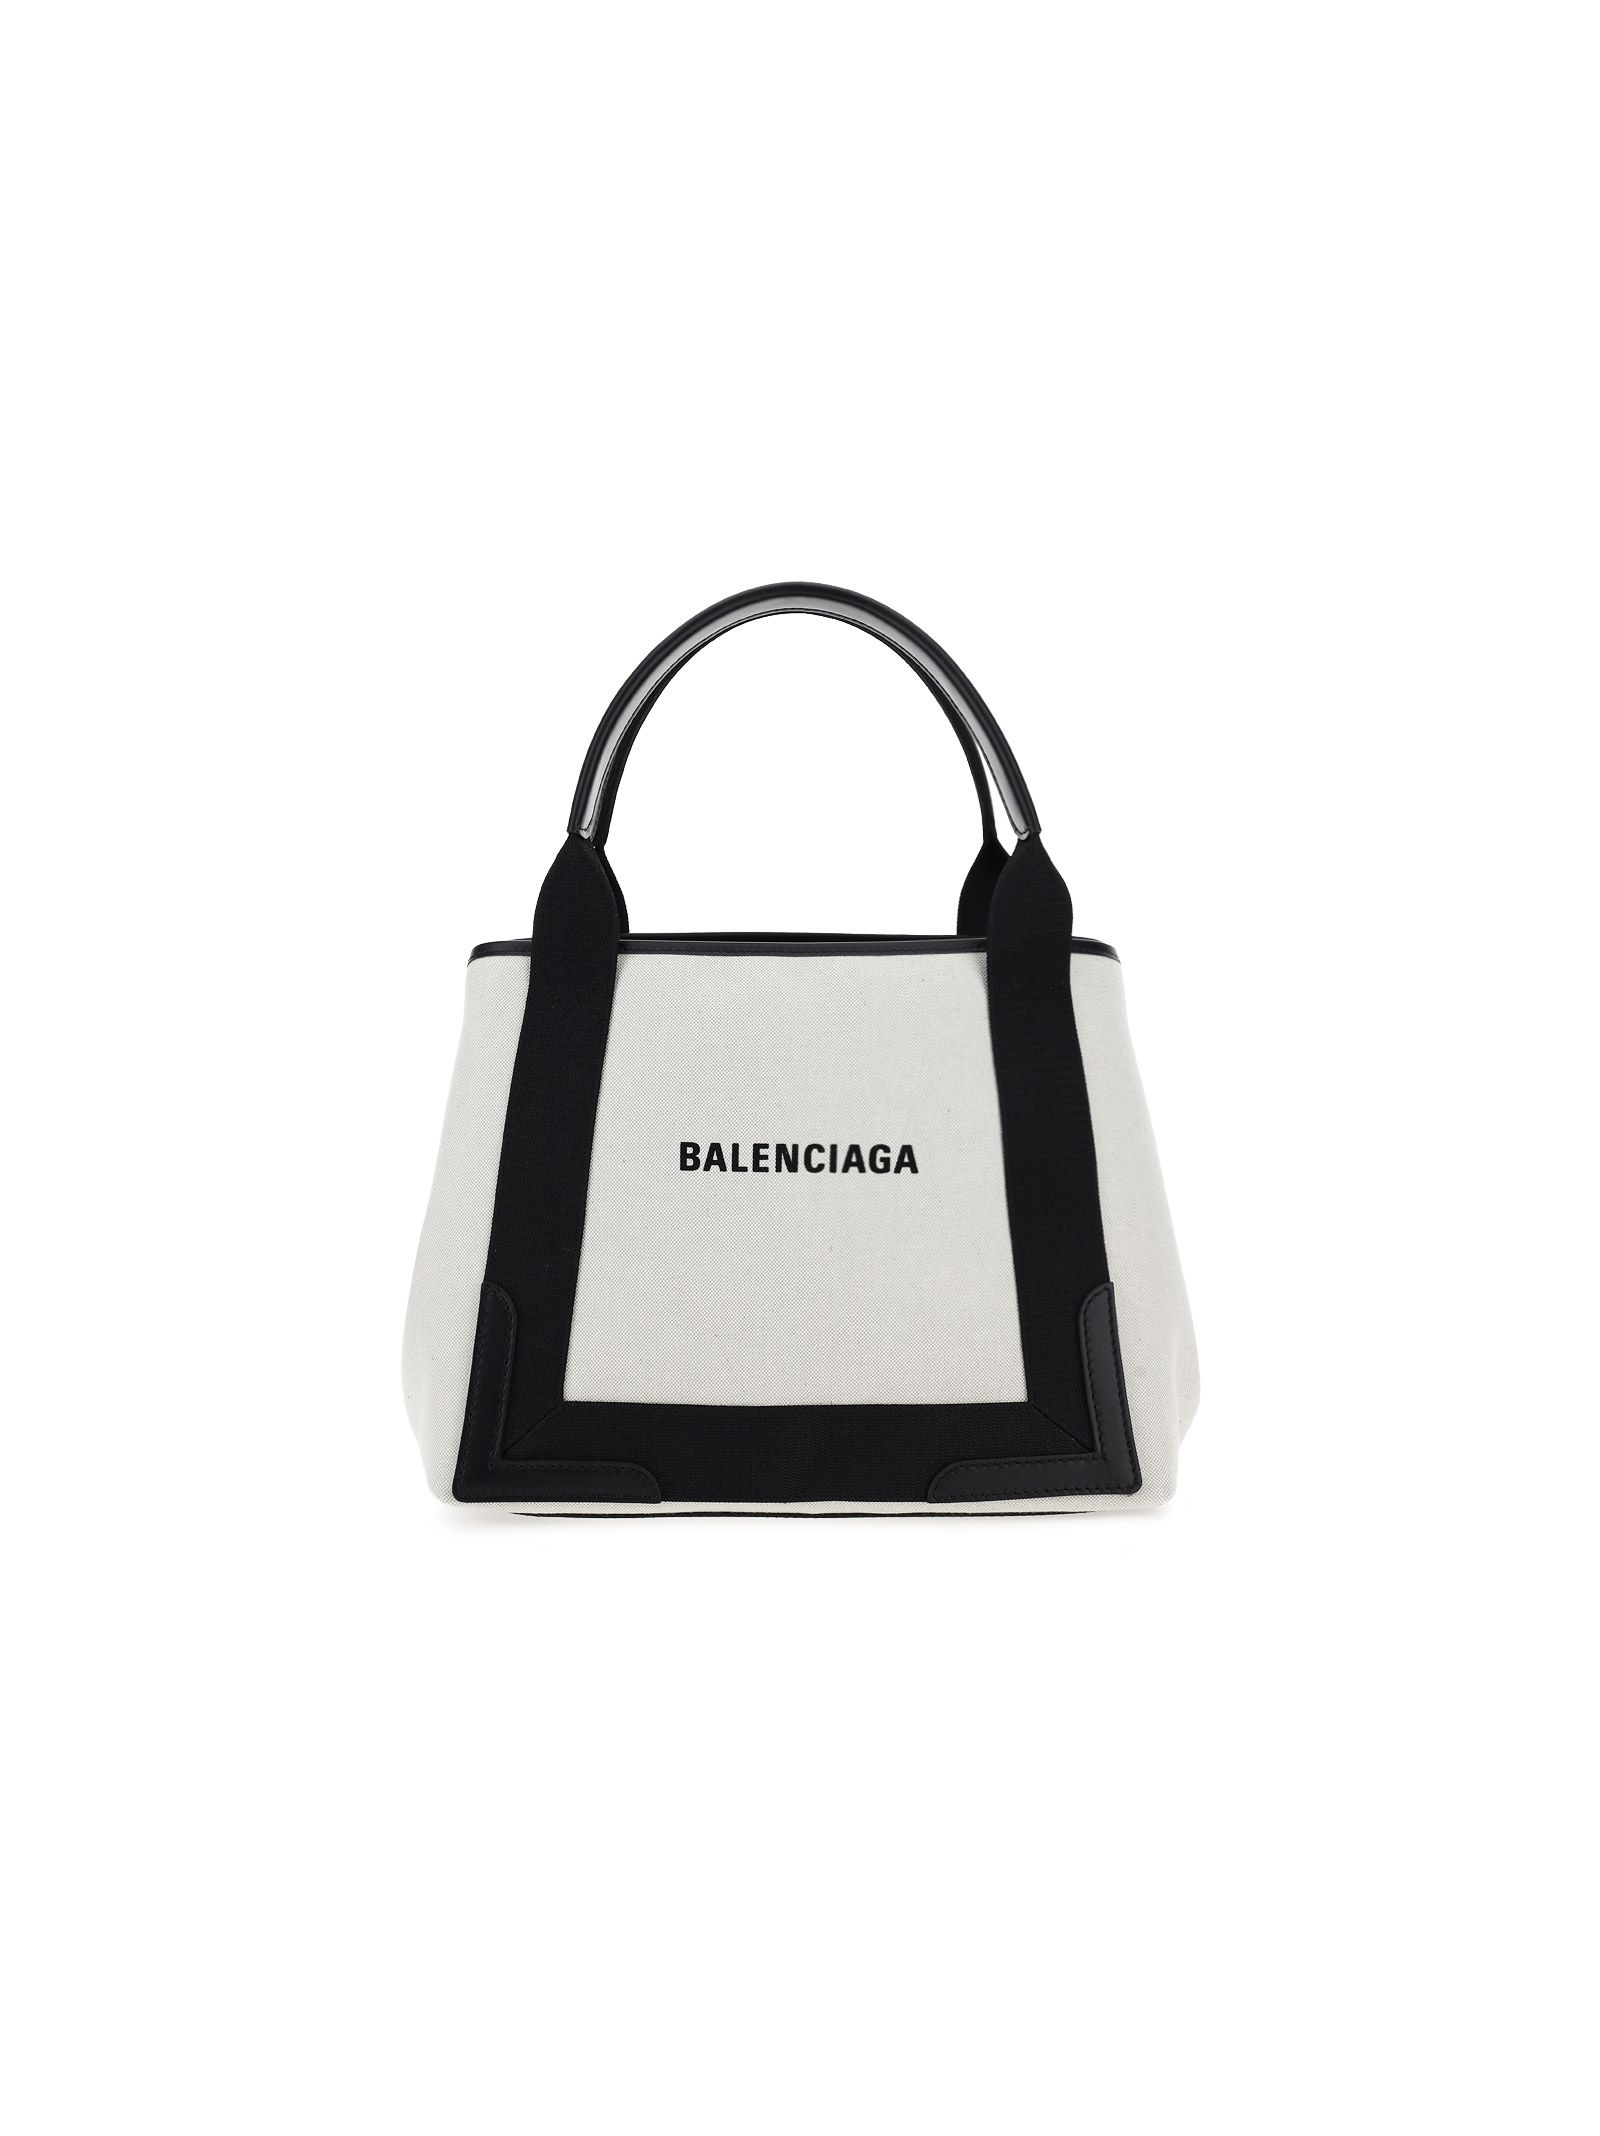 Balenciaga BALENCIAGA WOMEN'S BLACK OTHER MATERIALS HANDBAG